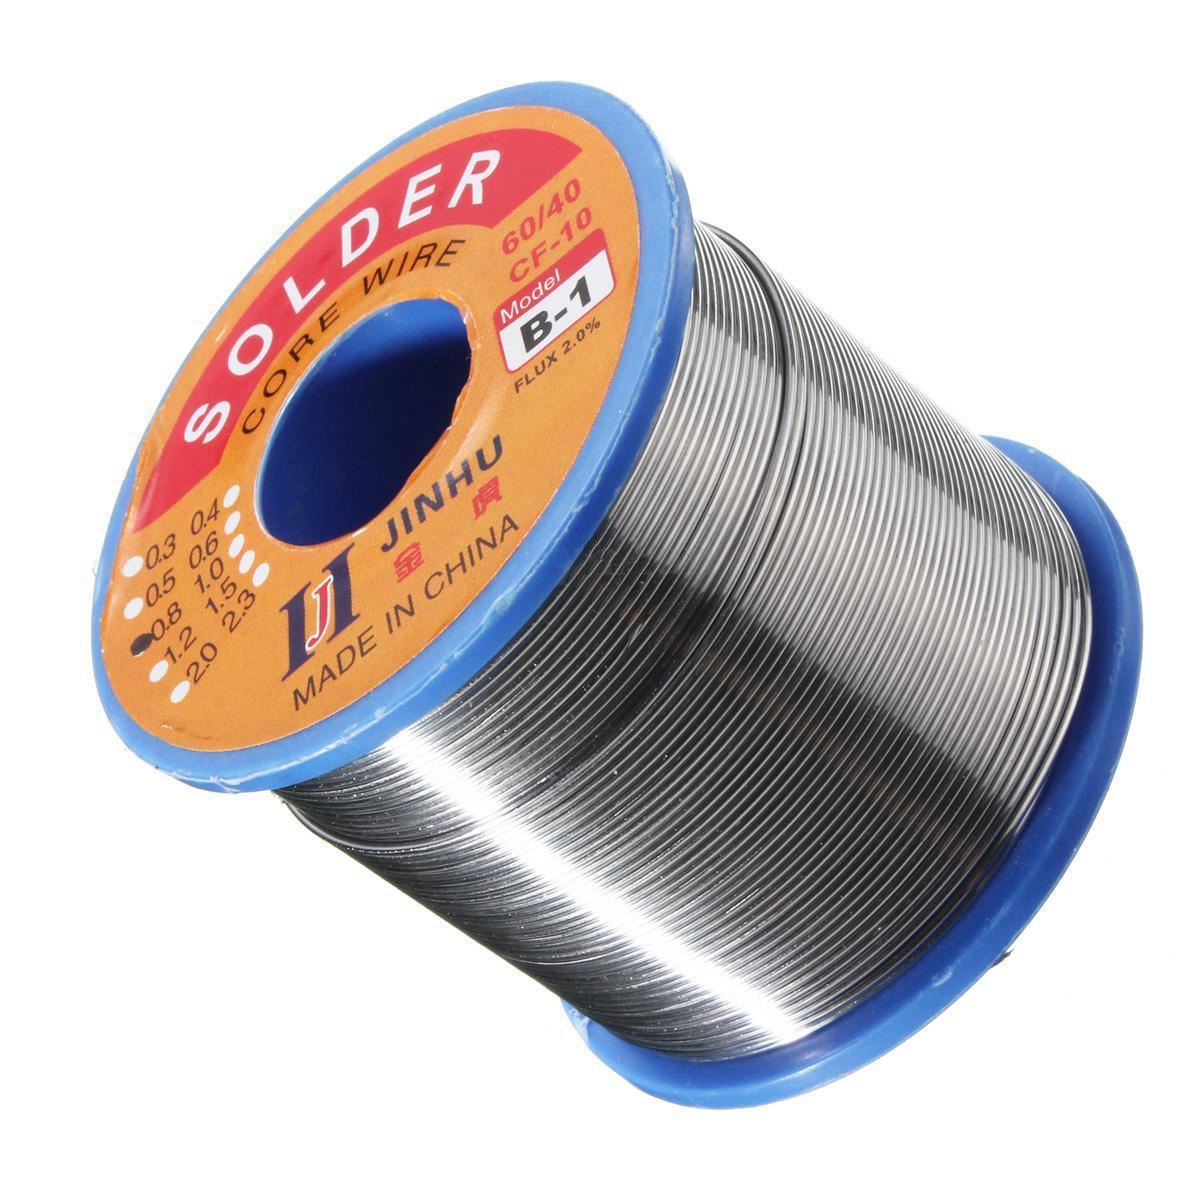 500g 60/40 Tin lead Solder Wire Rosin Core Soldering 2% Flux, 0.7Mm 1 Reel